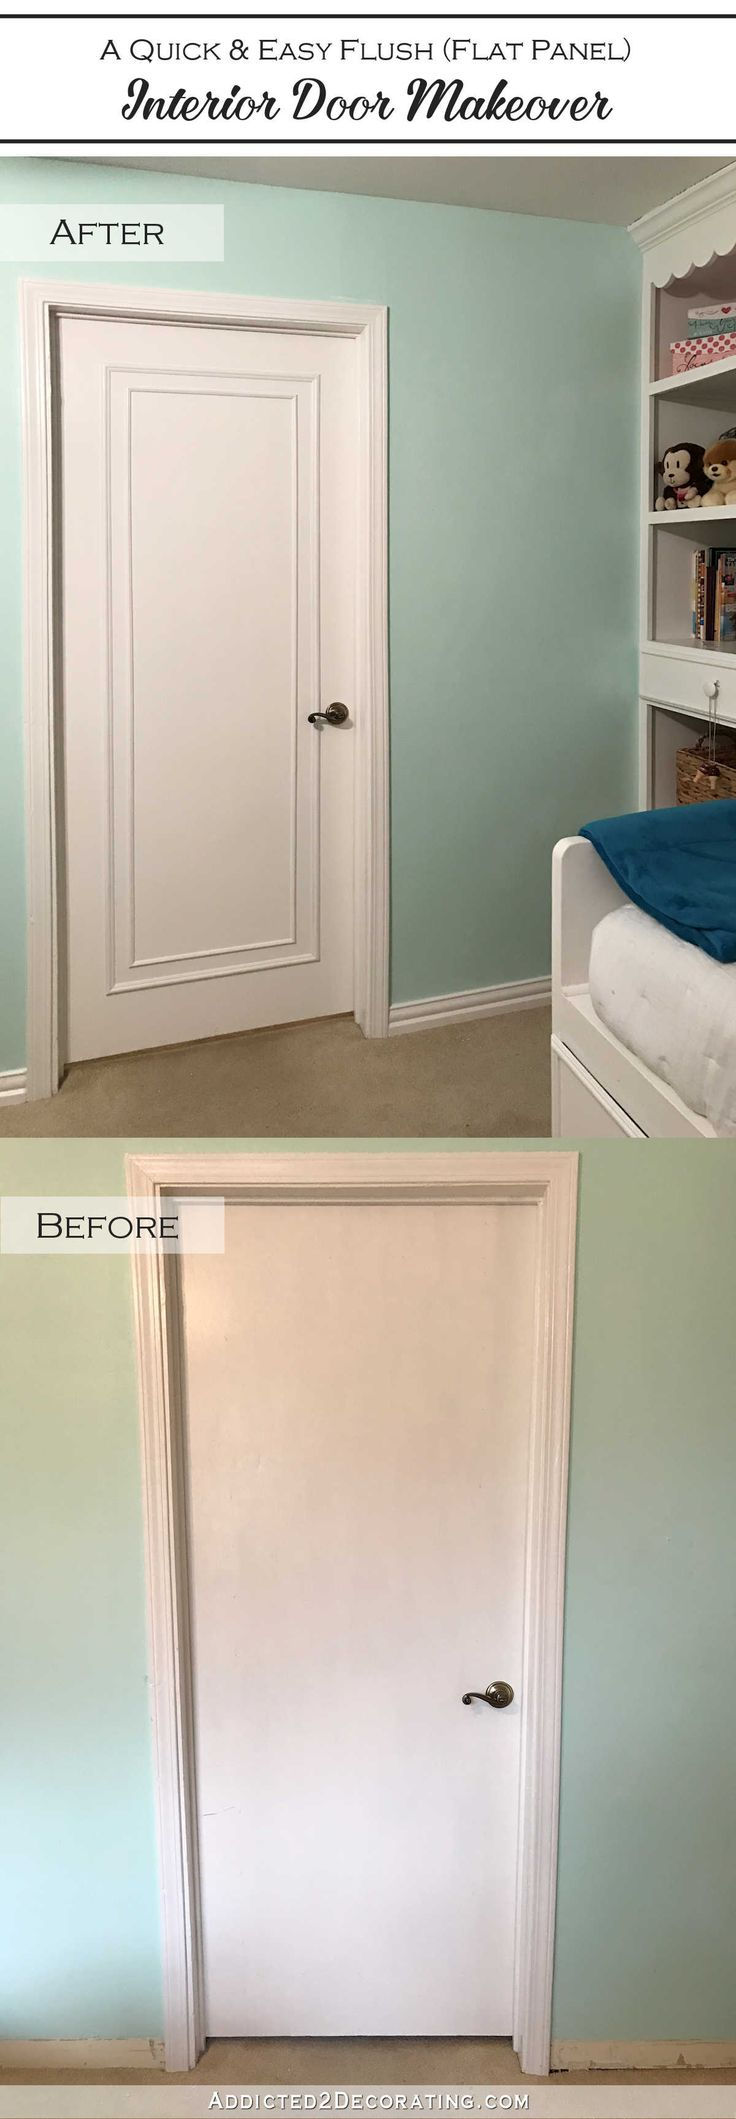 best 25+ 2 panel doors ideas on pinterest | diy 2 panel doors